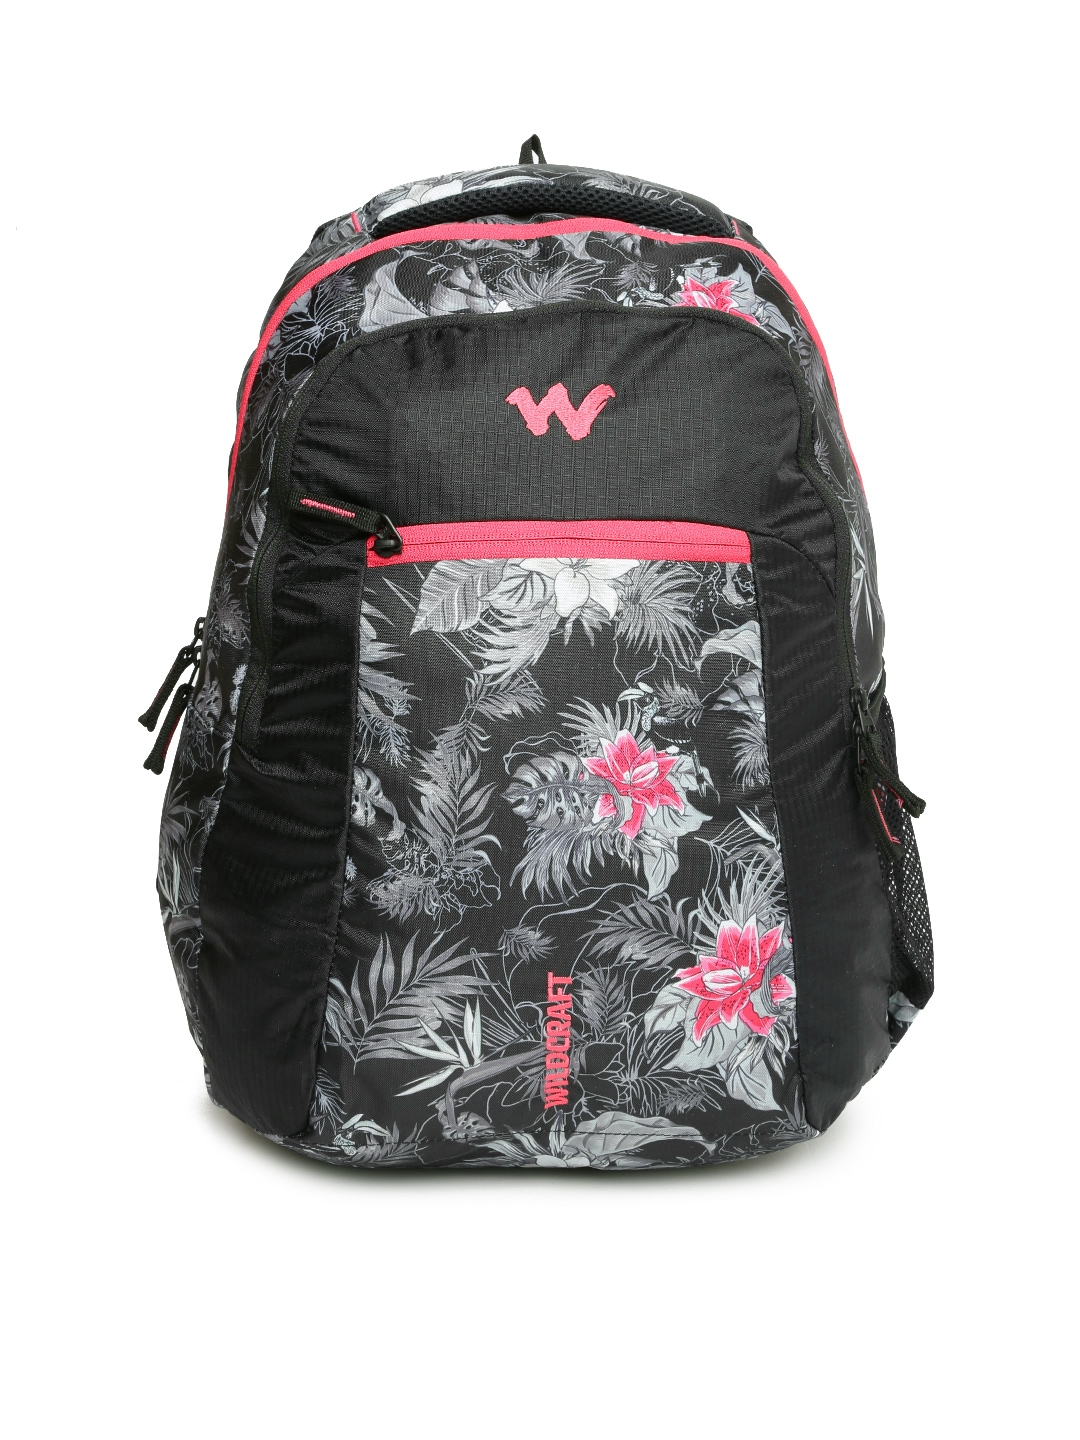 Buy Wildcraft Unisex Black Ace 2 Graphic Backpack - Backpacks for ... 44462c4af69c6